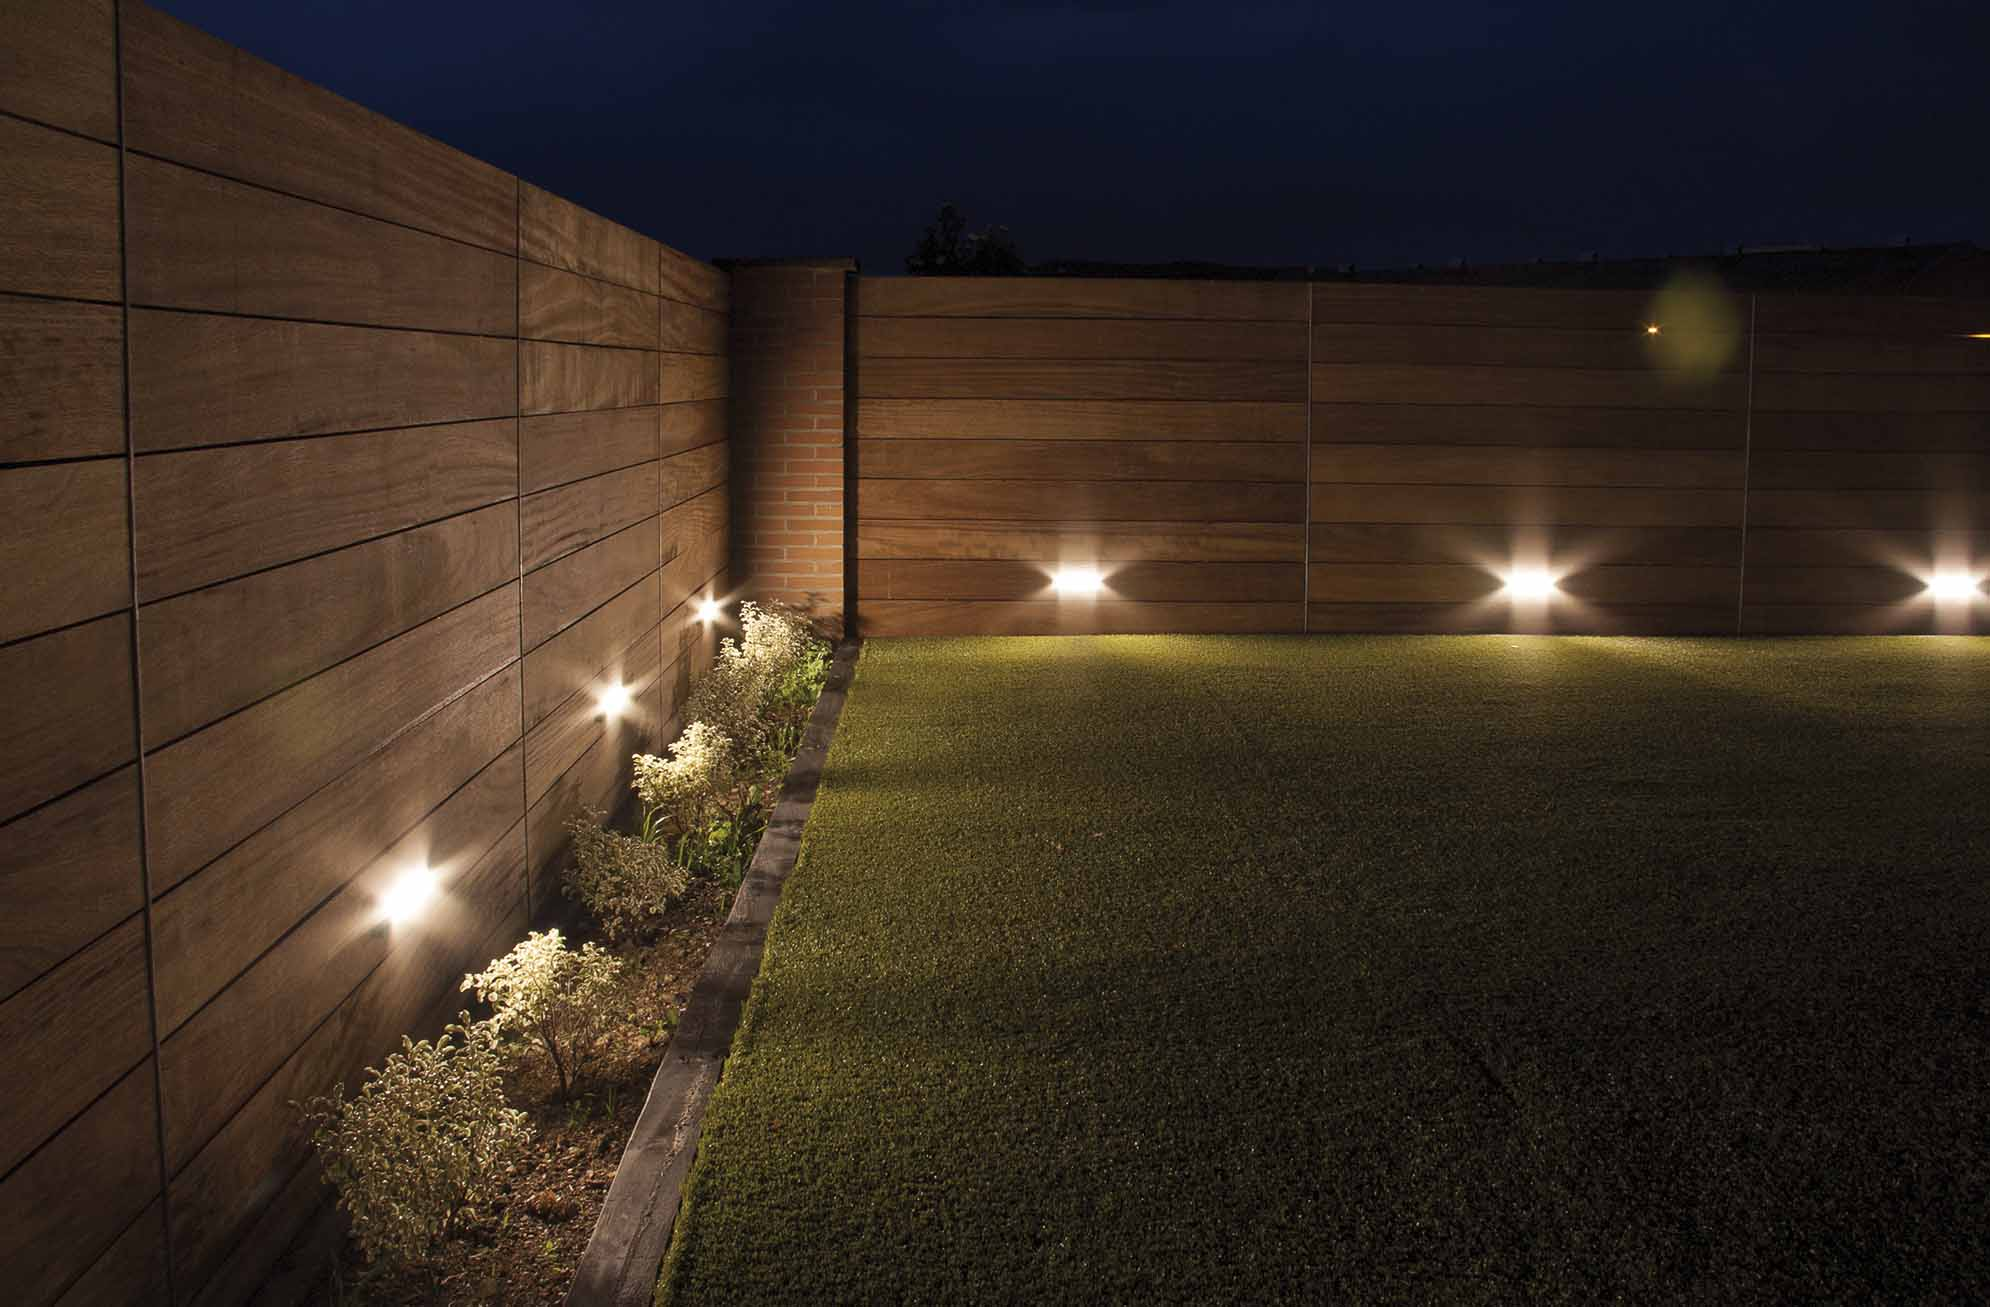 Iluminacion solar jardin ideas de disenos for Luces led jardin